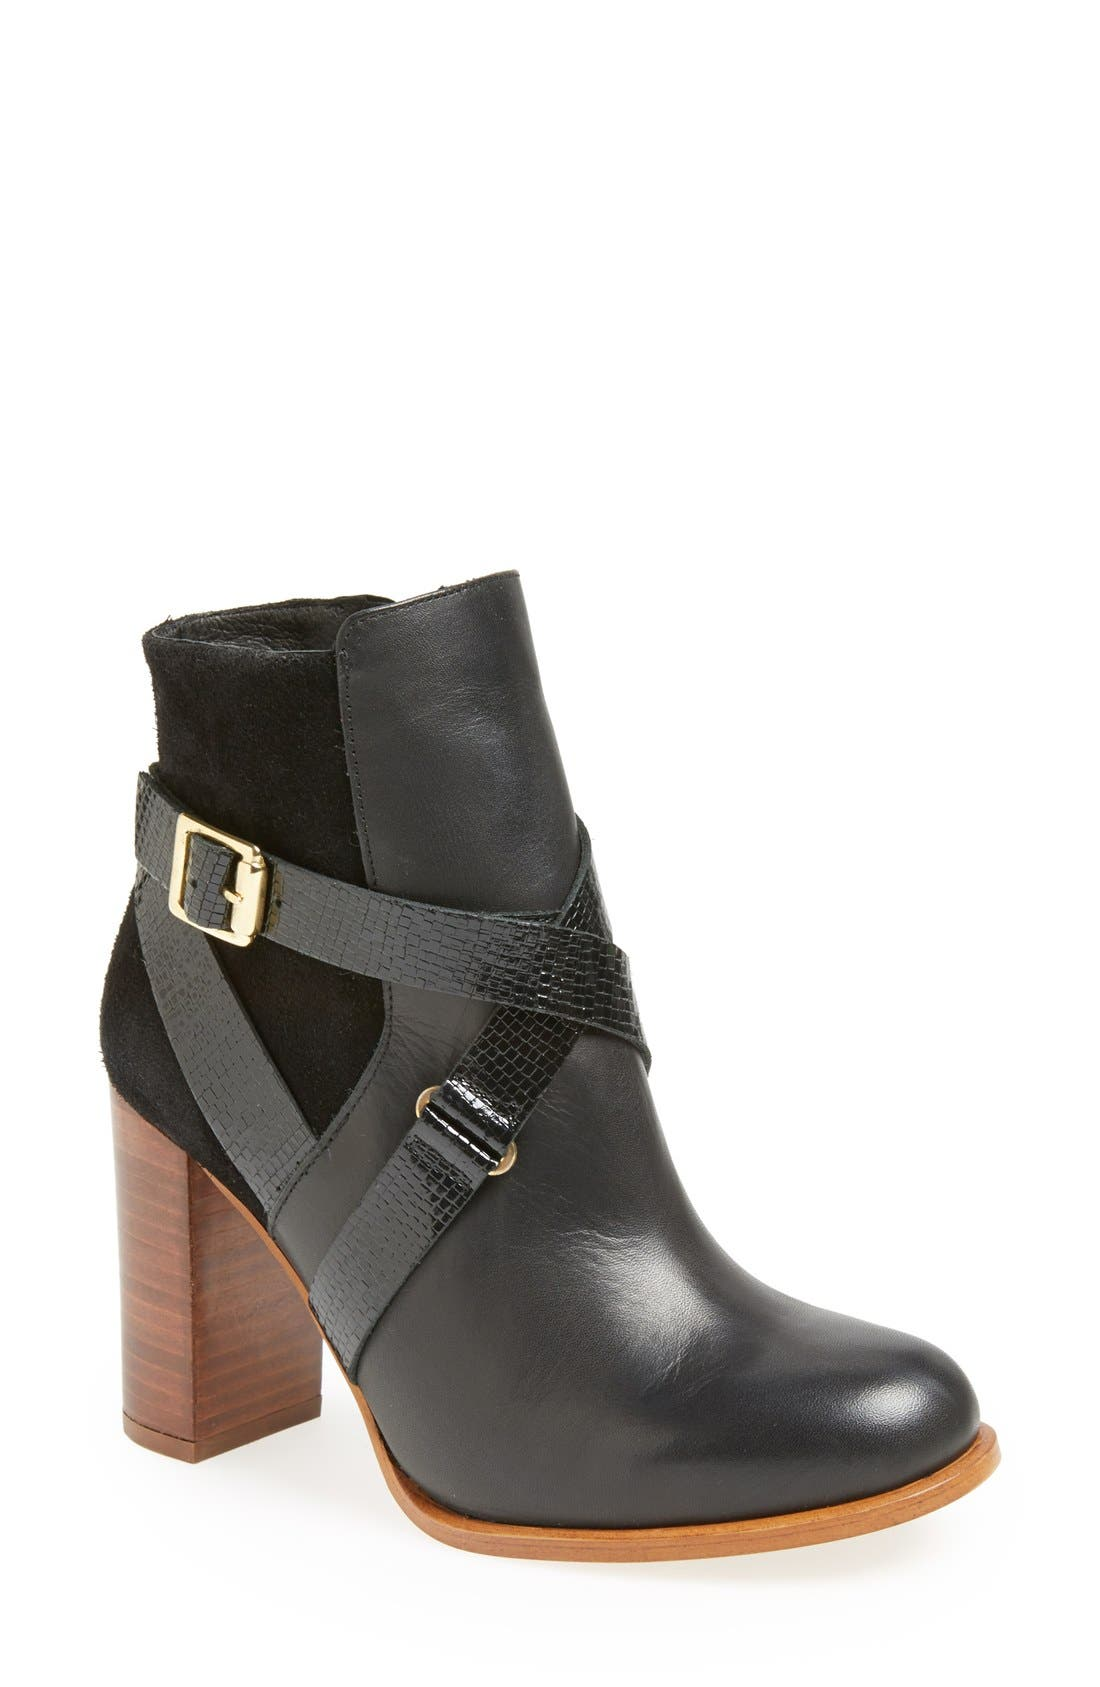 'Aroma' Ankle Boot, Main, color, 001